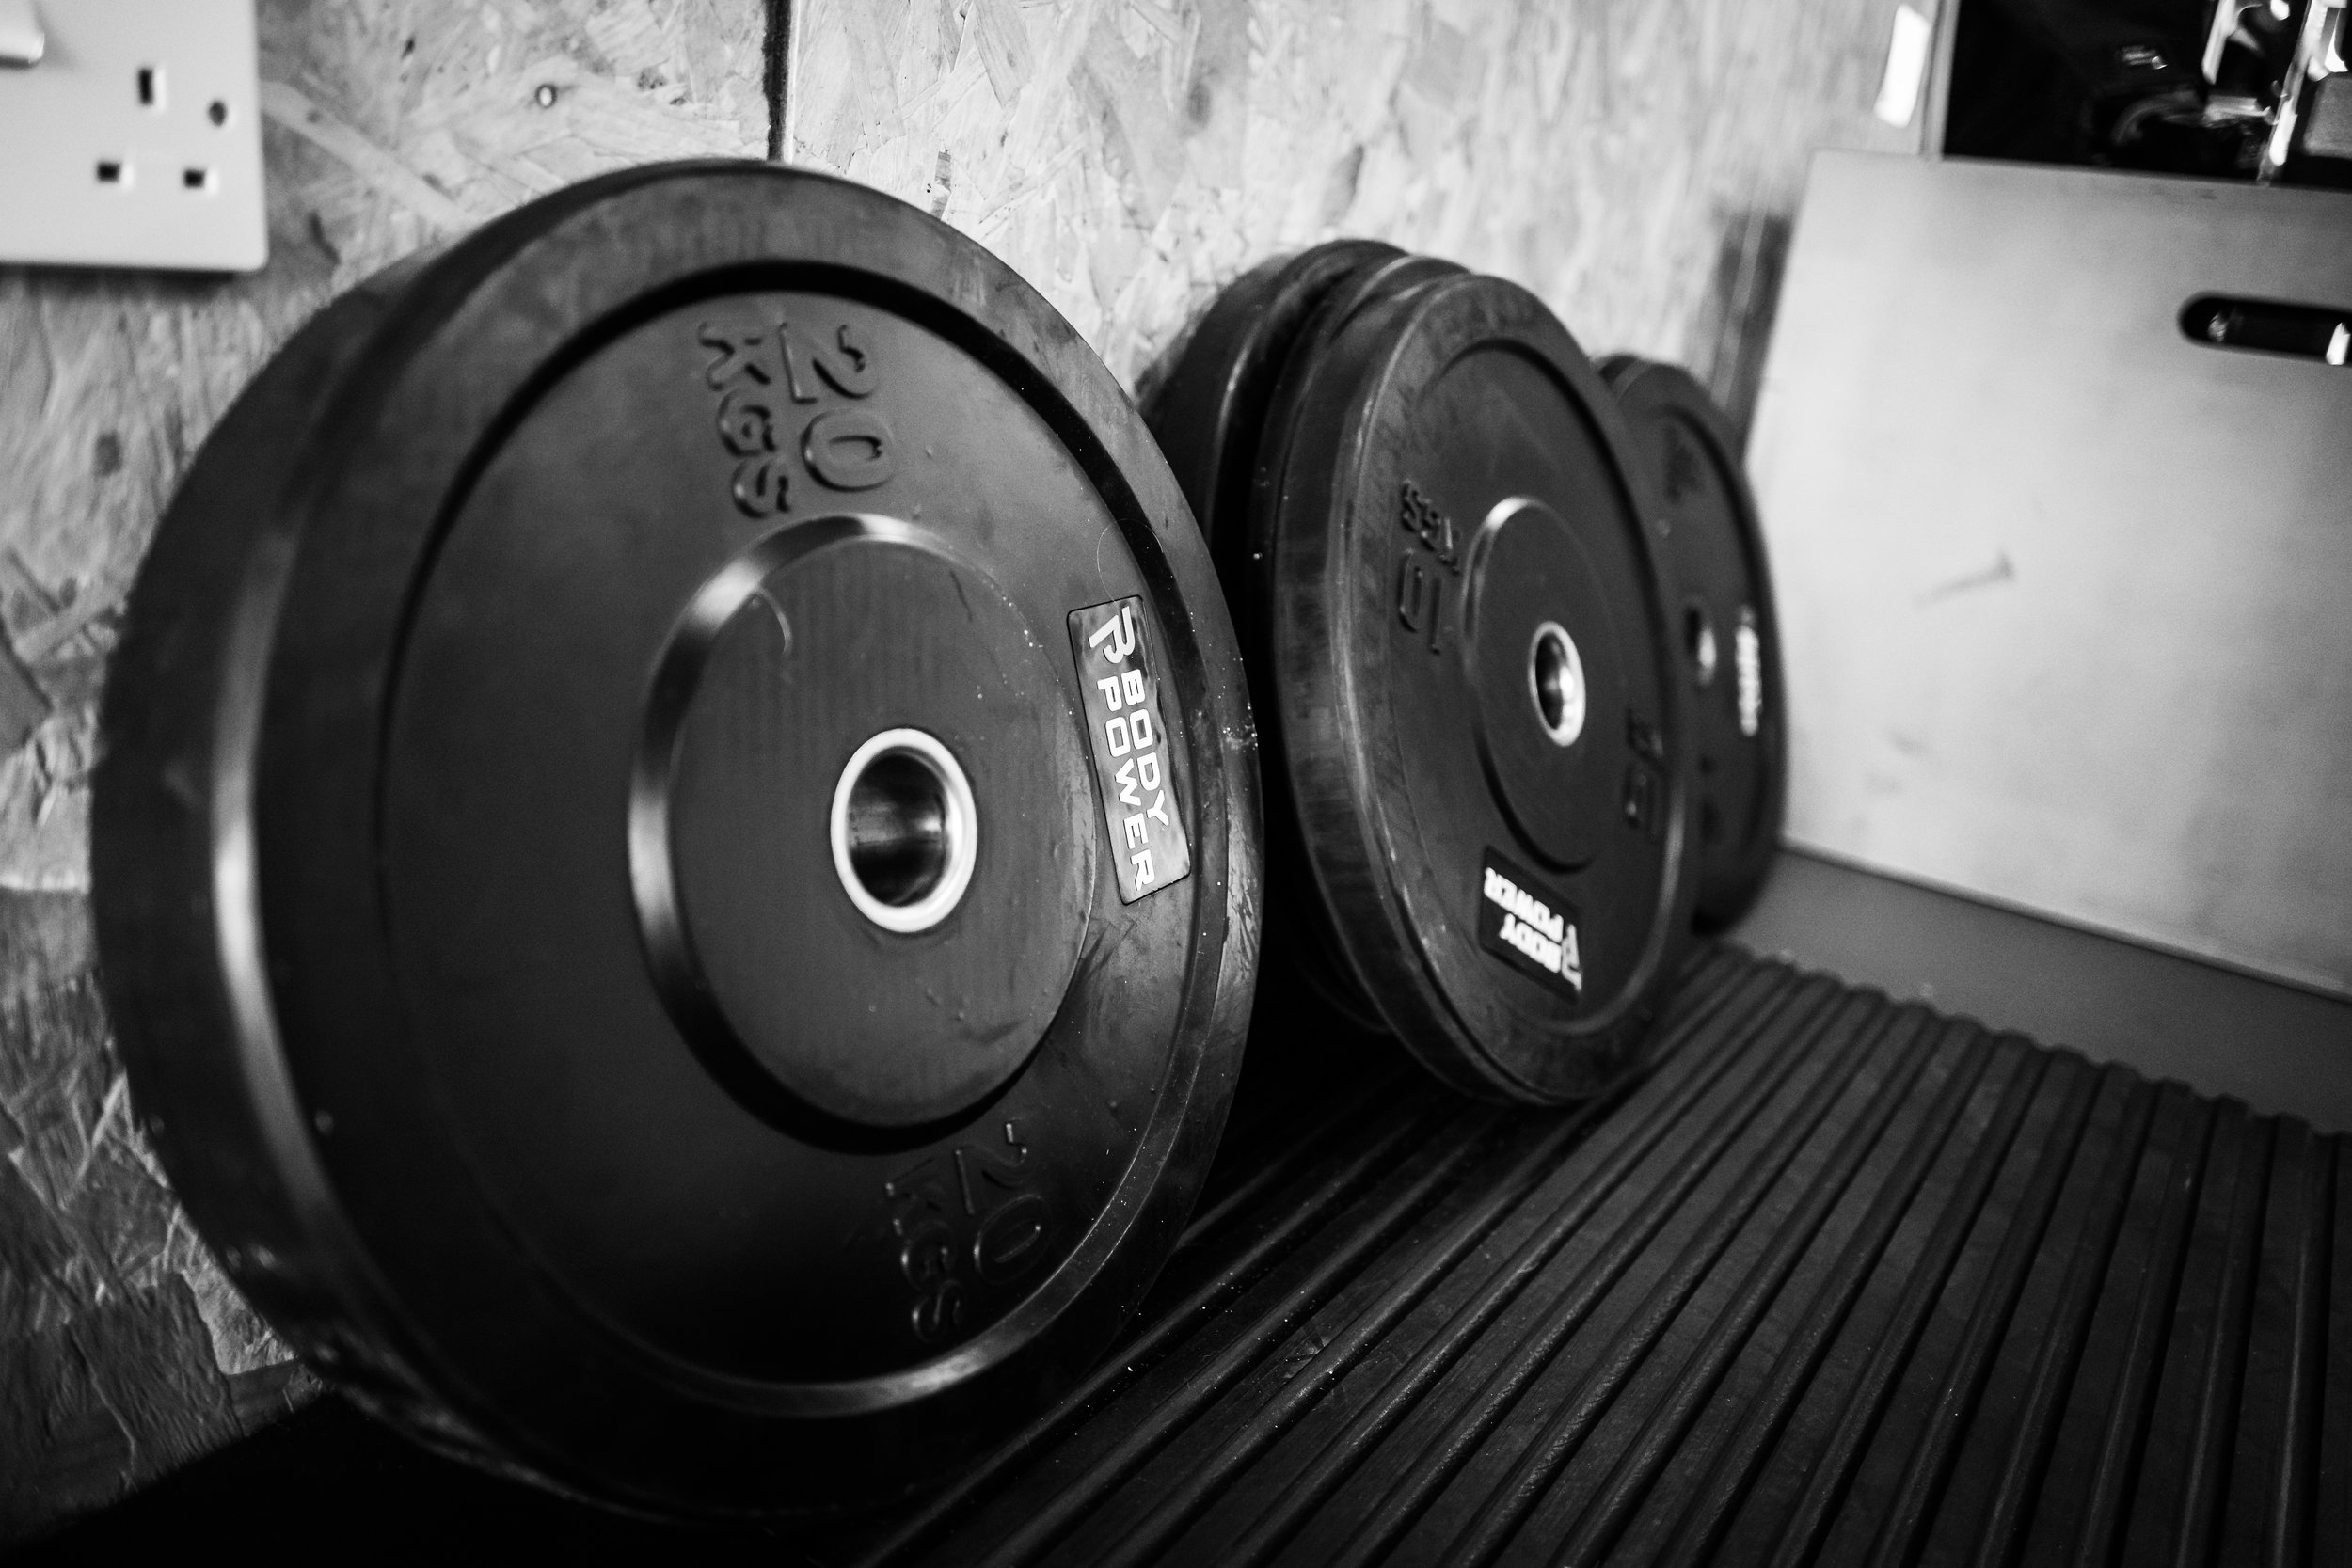 All free weights - No cardio machines. You can do those yourself, and they're not necessary anyway. We help people who have no idea what they're doing with free weights learn how to do it safely, effectively and ultimately, by themselves.